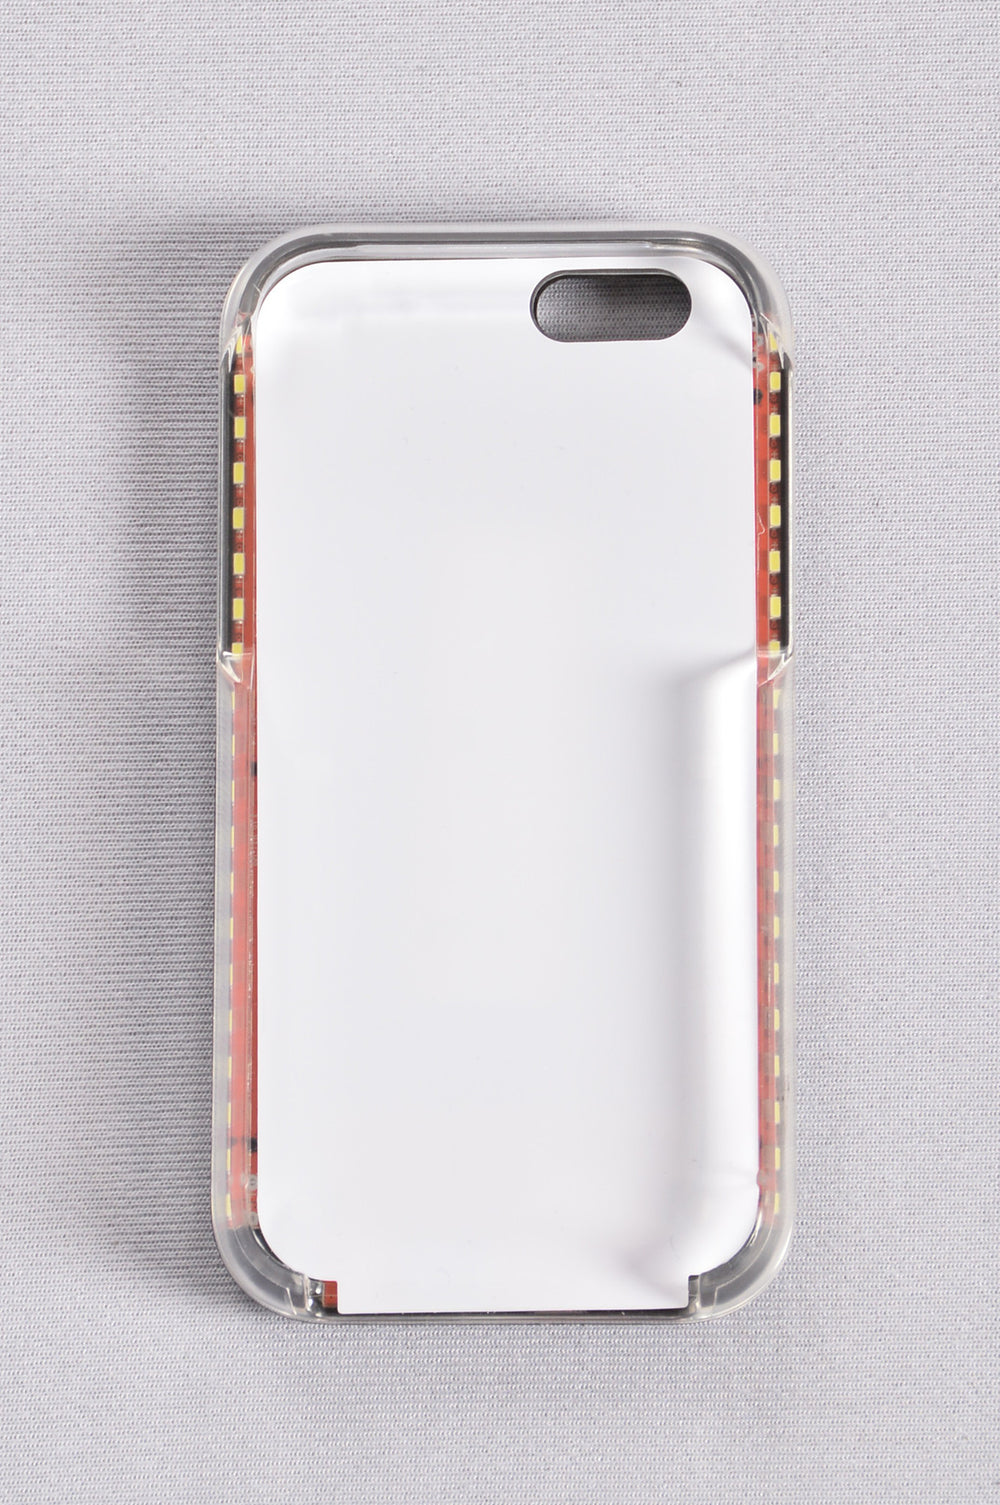 All By My Selfie - iPhone6 Case